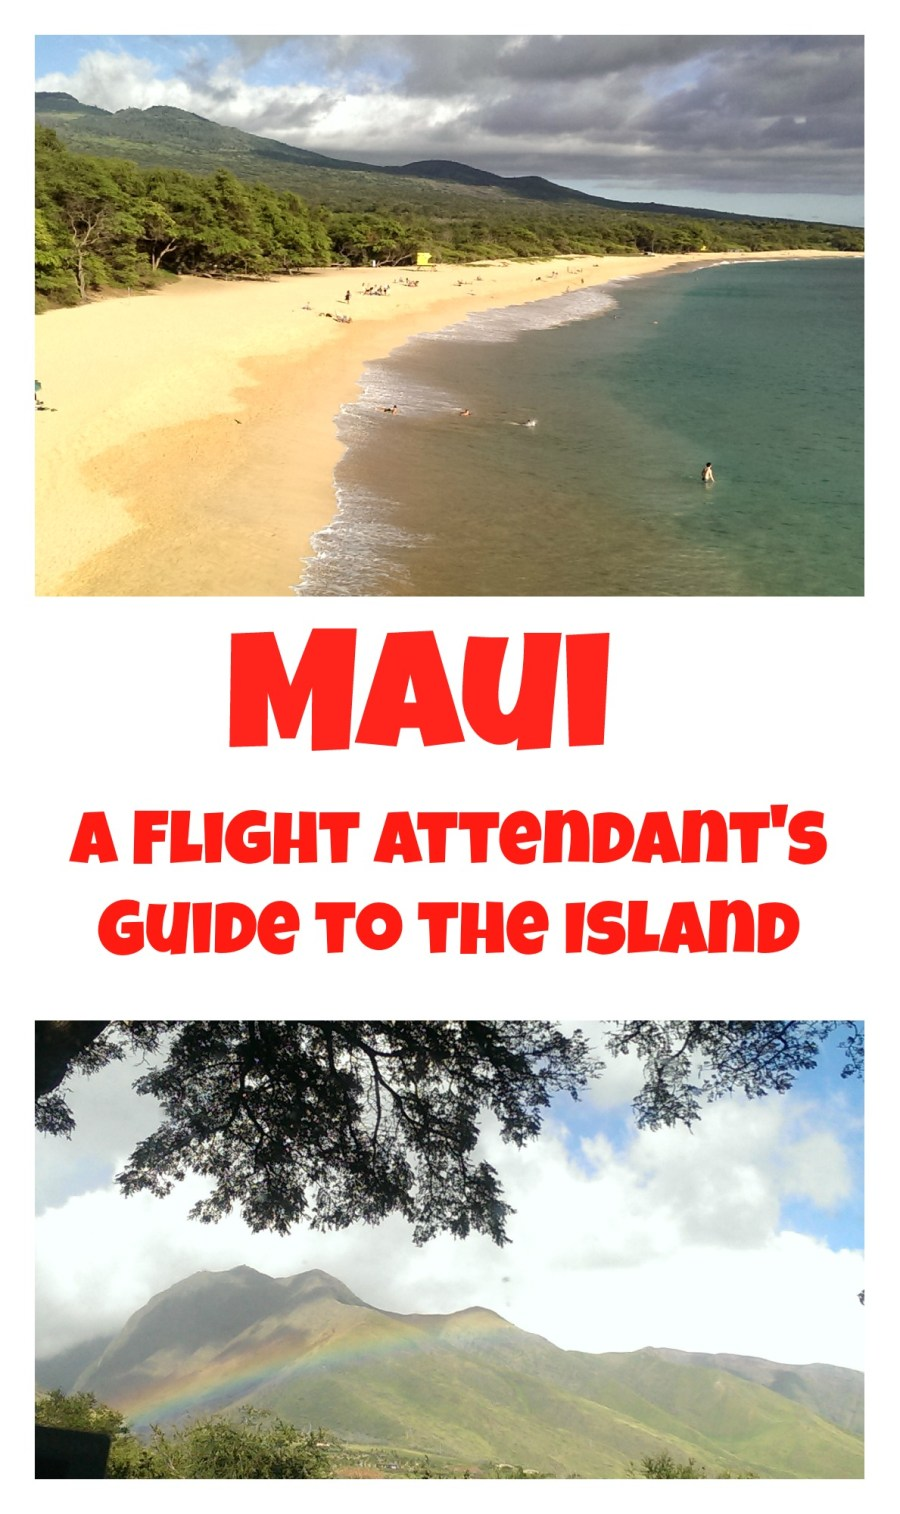 A Flight Attendant's Guide to Maui